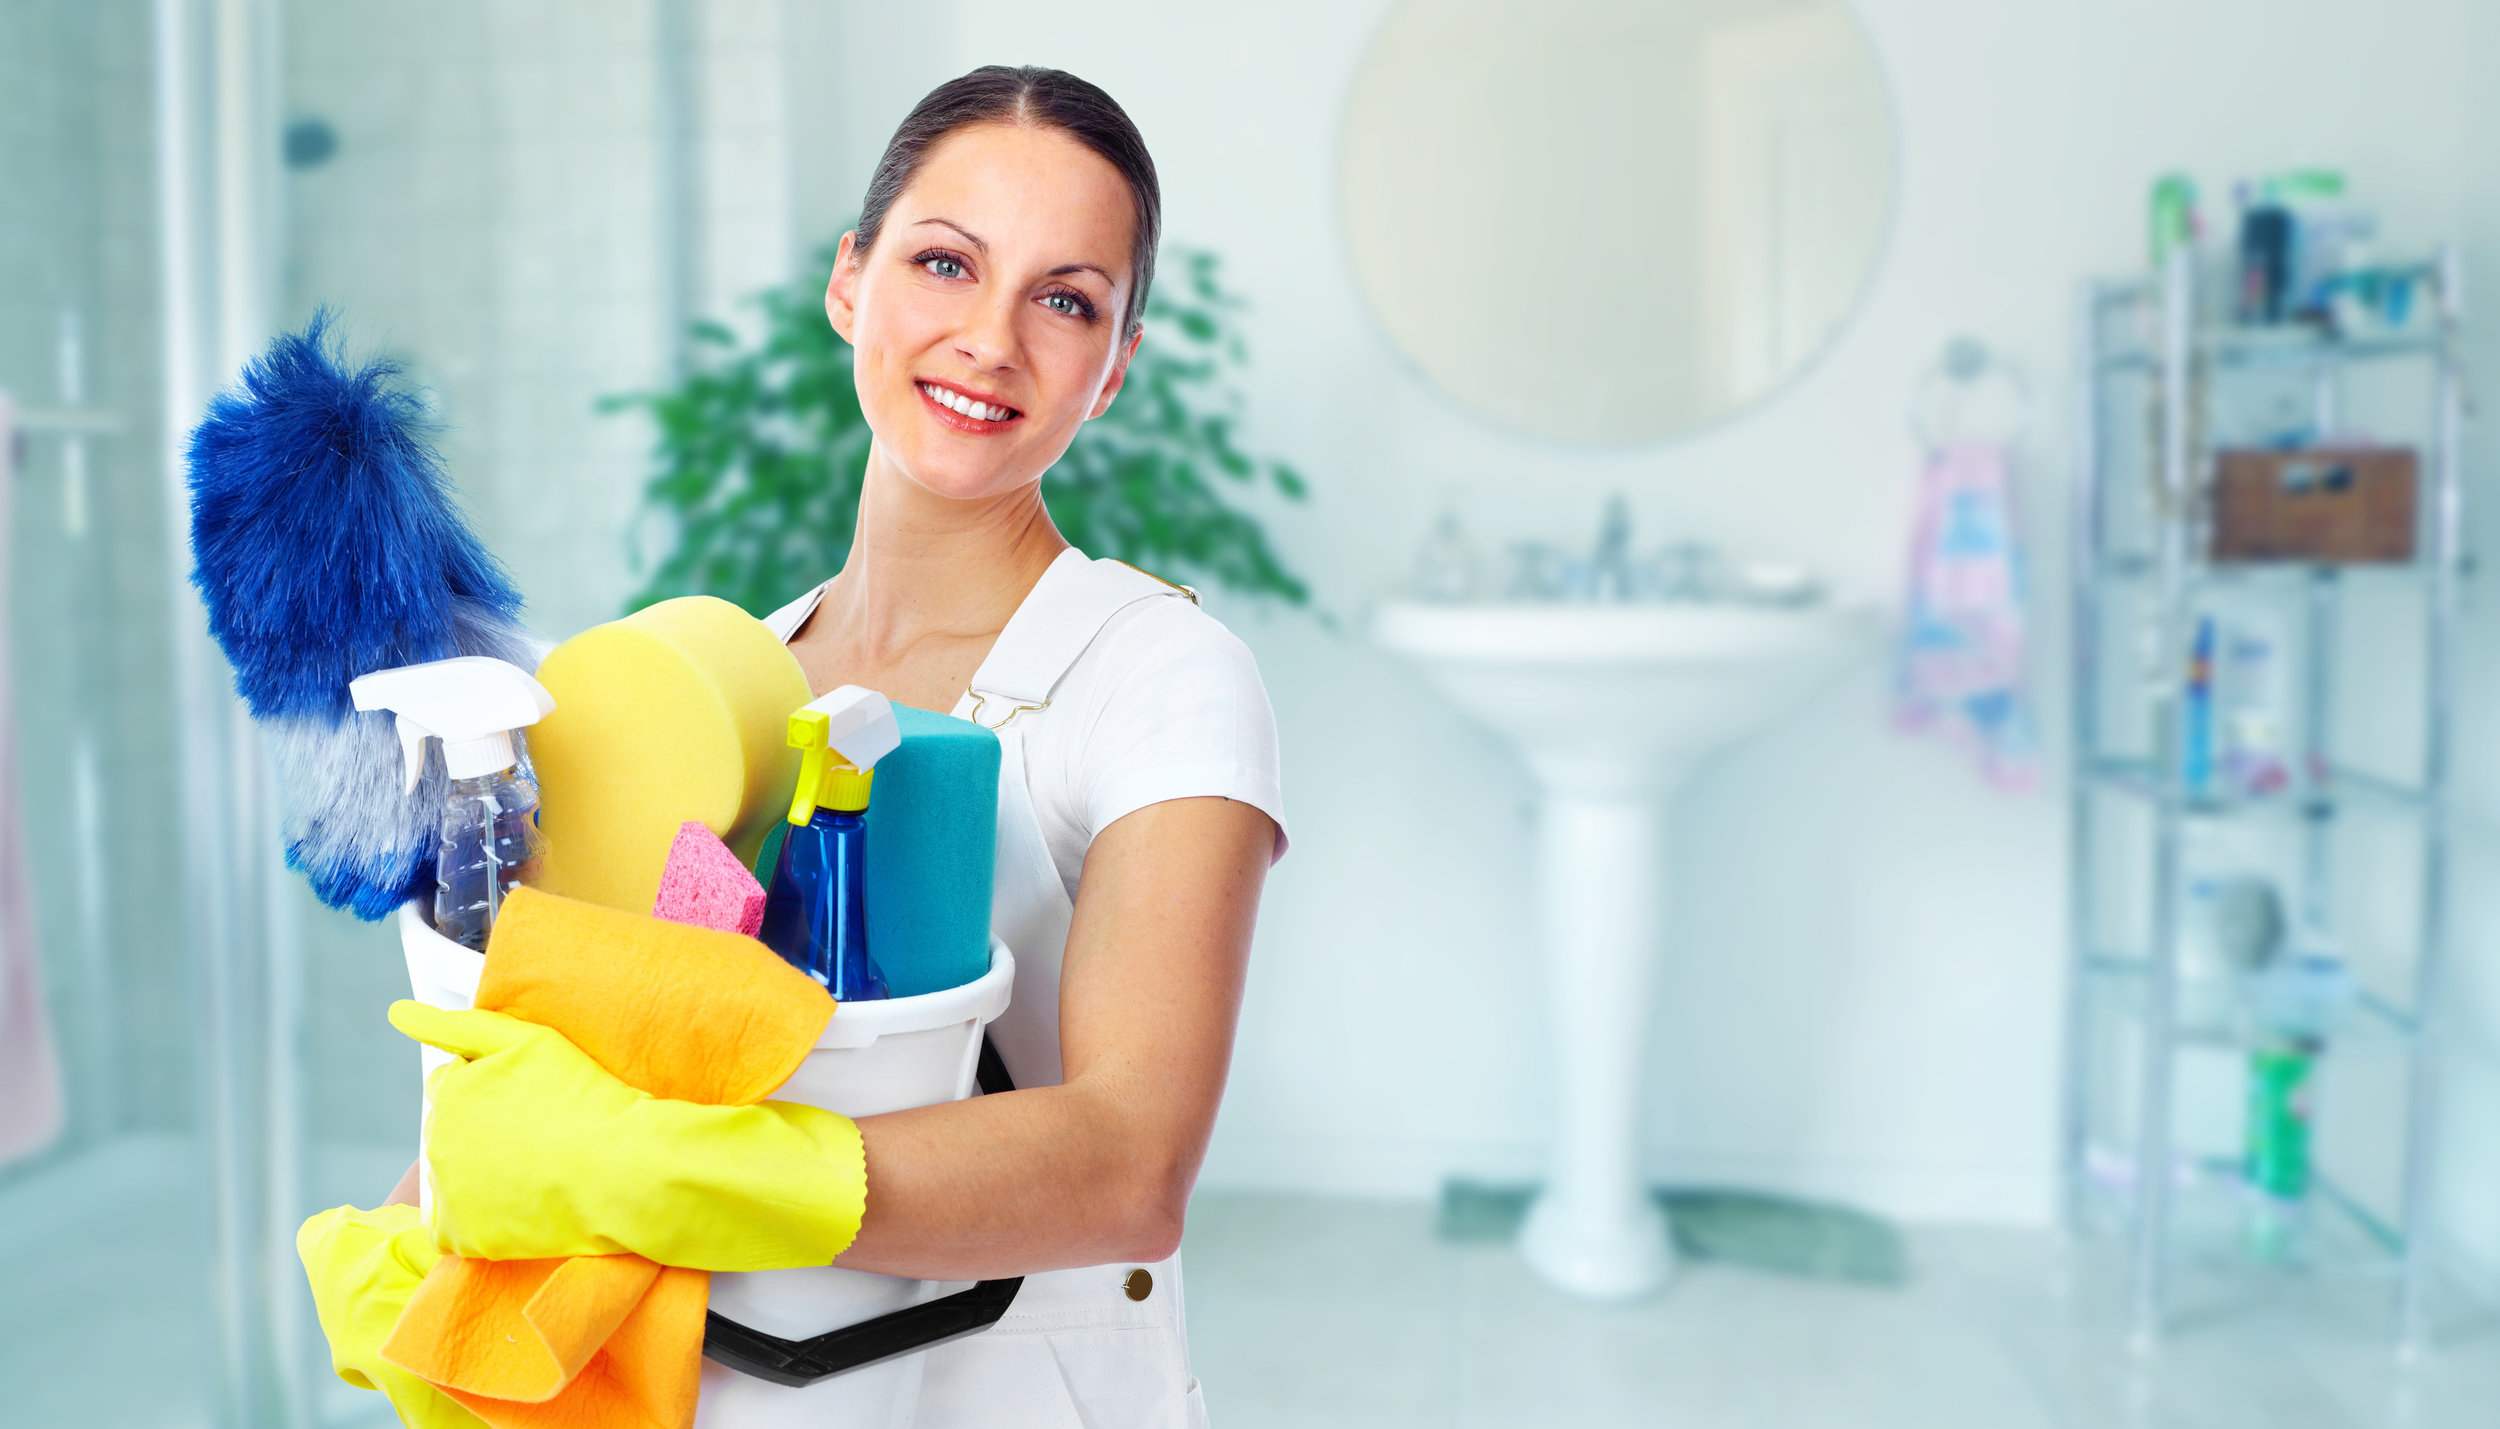 Order your cleaning & relax - We're ready to free up your time and energy for something more fun or important. Click below to simply select the date & time you'd like your professional to show up.